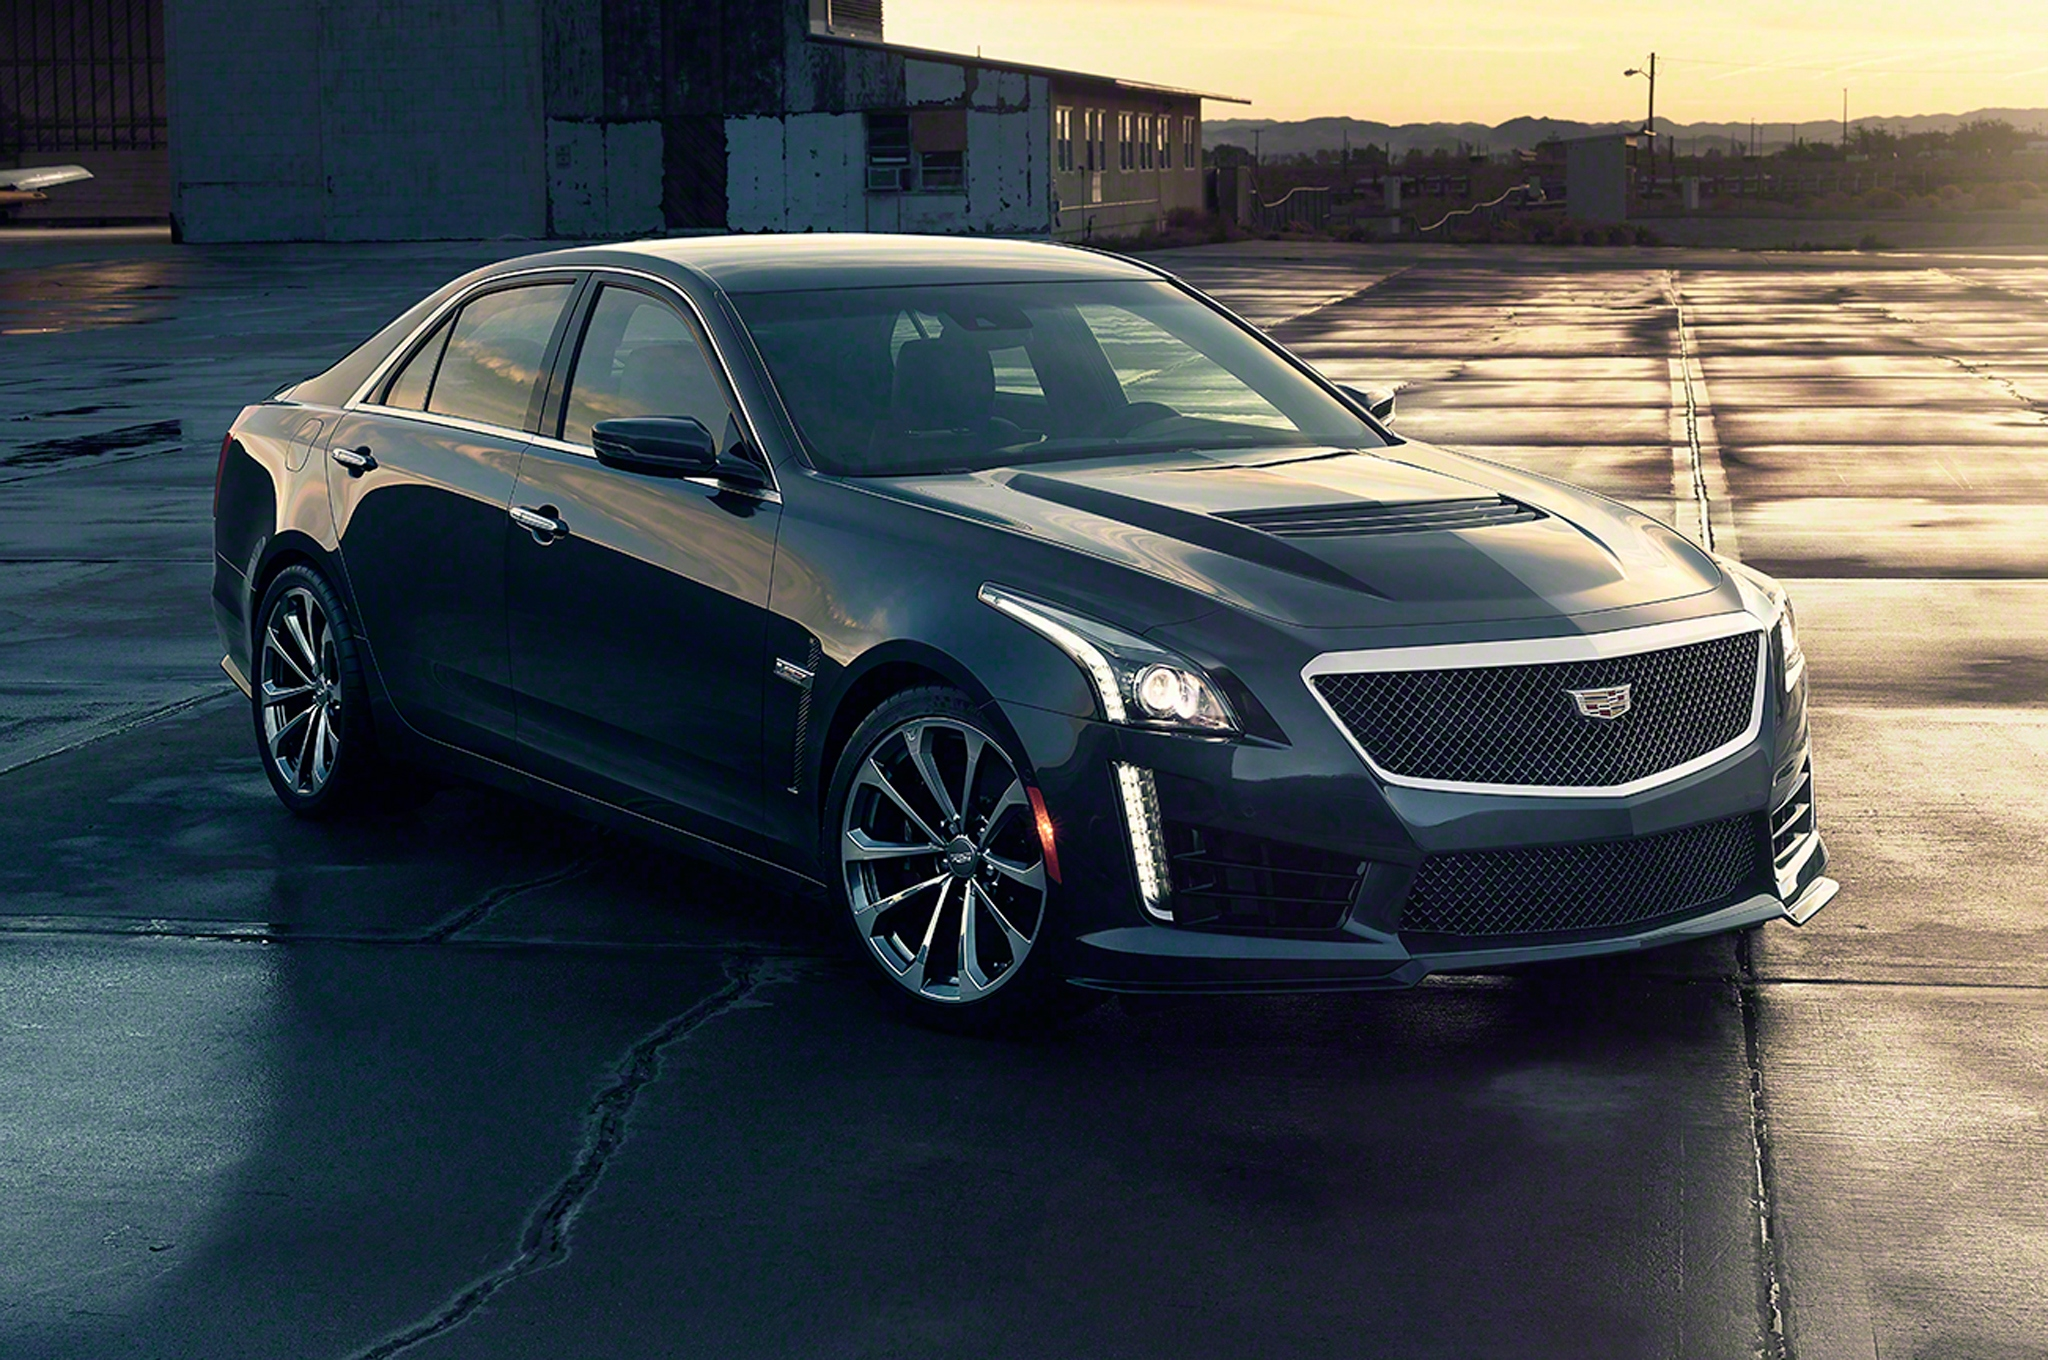 2016-cadillac-cts-v-front-side-view